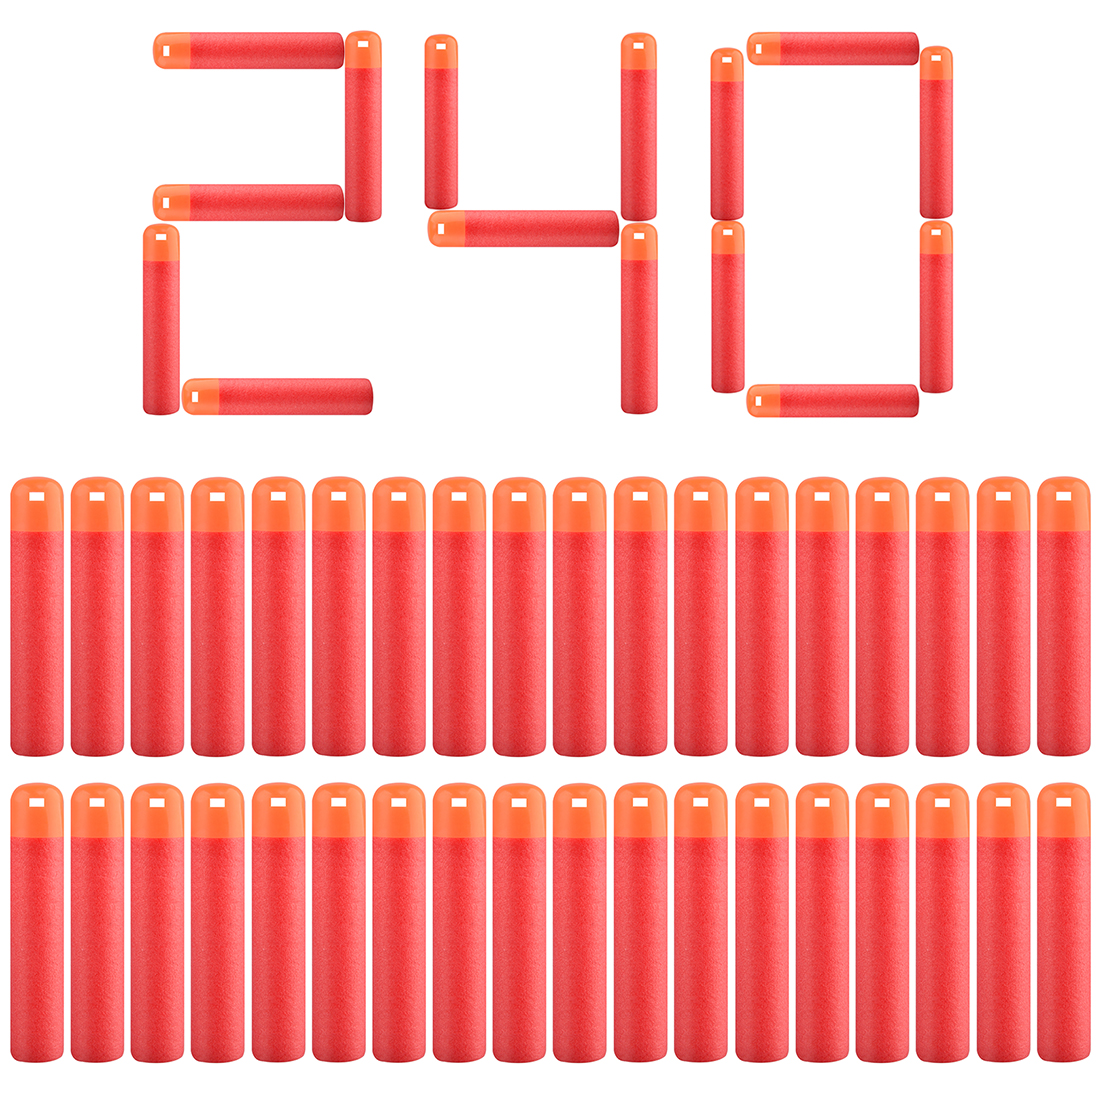 30pcs/60pcs/120pcs/240pcs Soft Bullet Hollow Soft Head Foam Bullets For Nerf  For Mega Series - Red